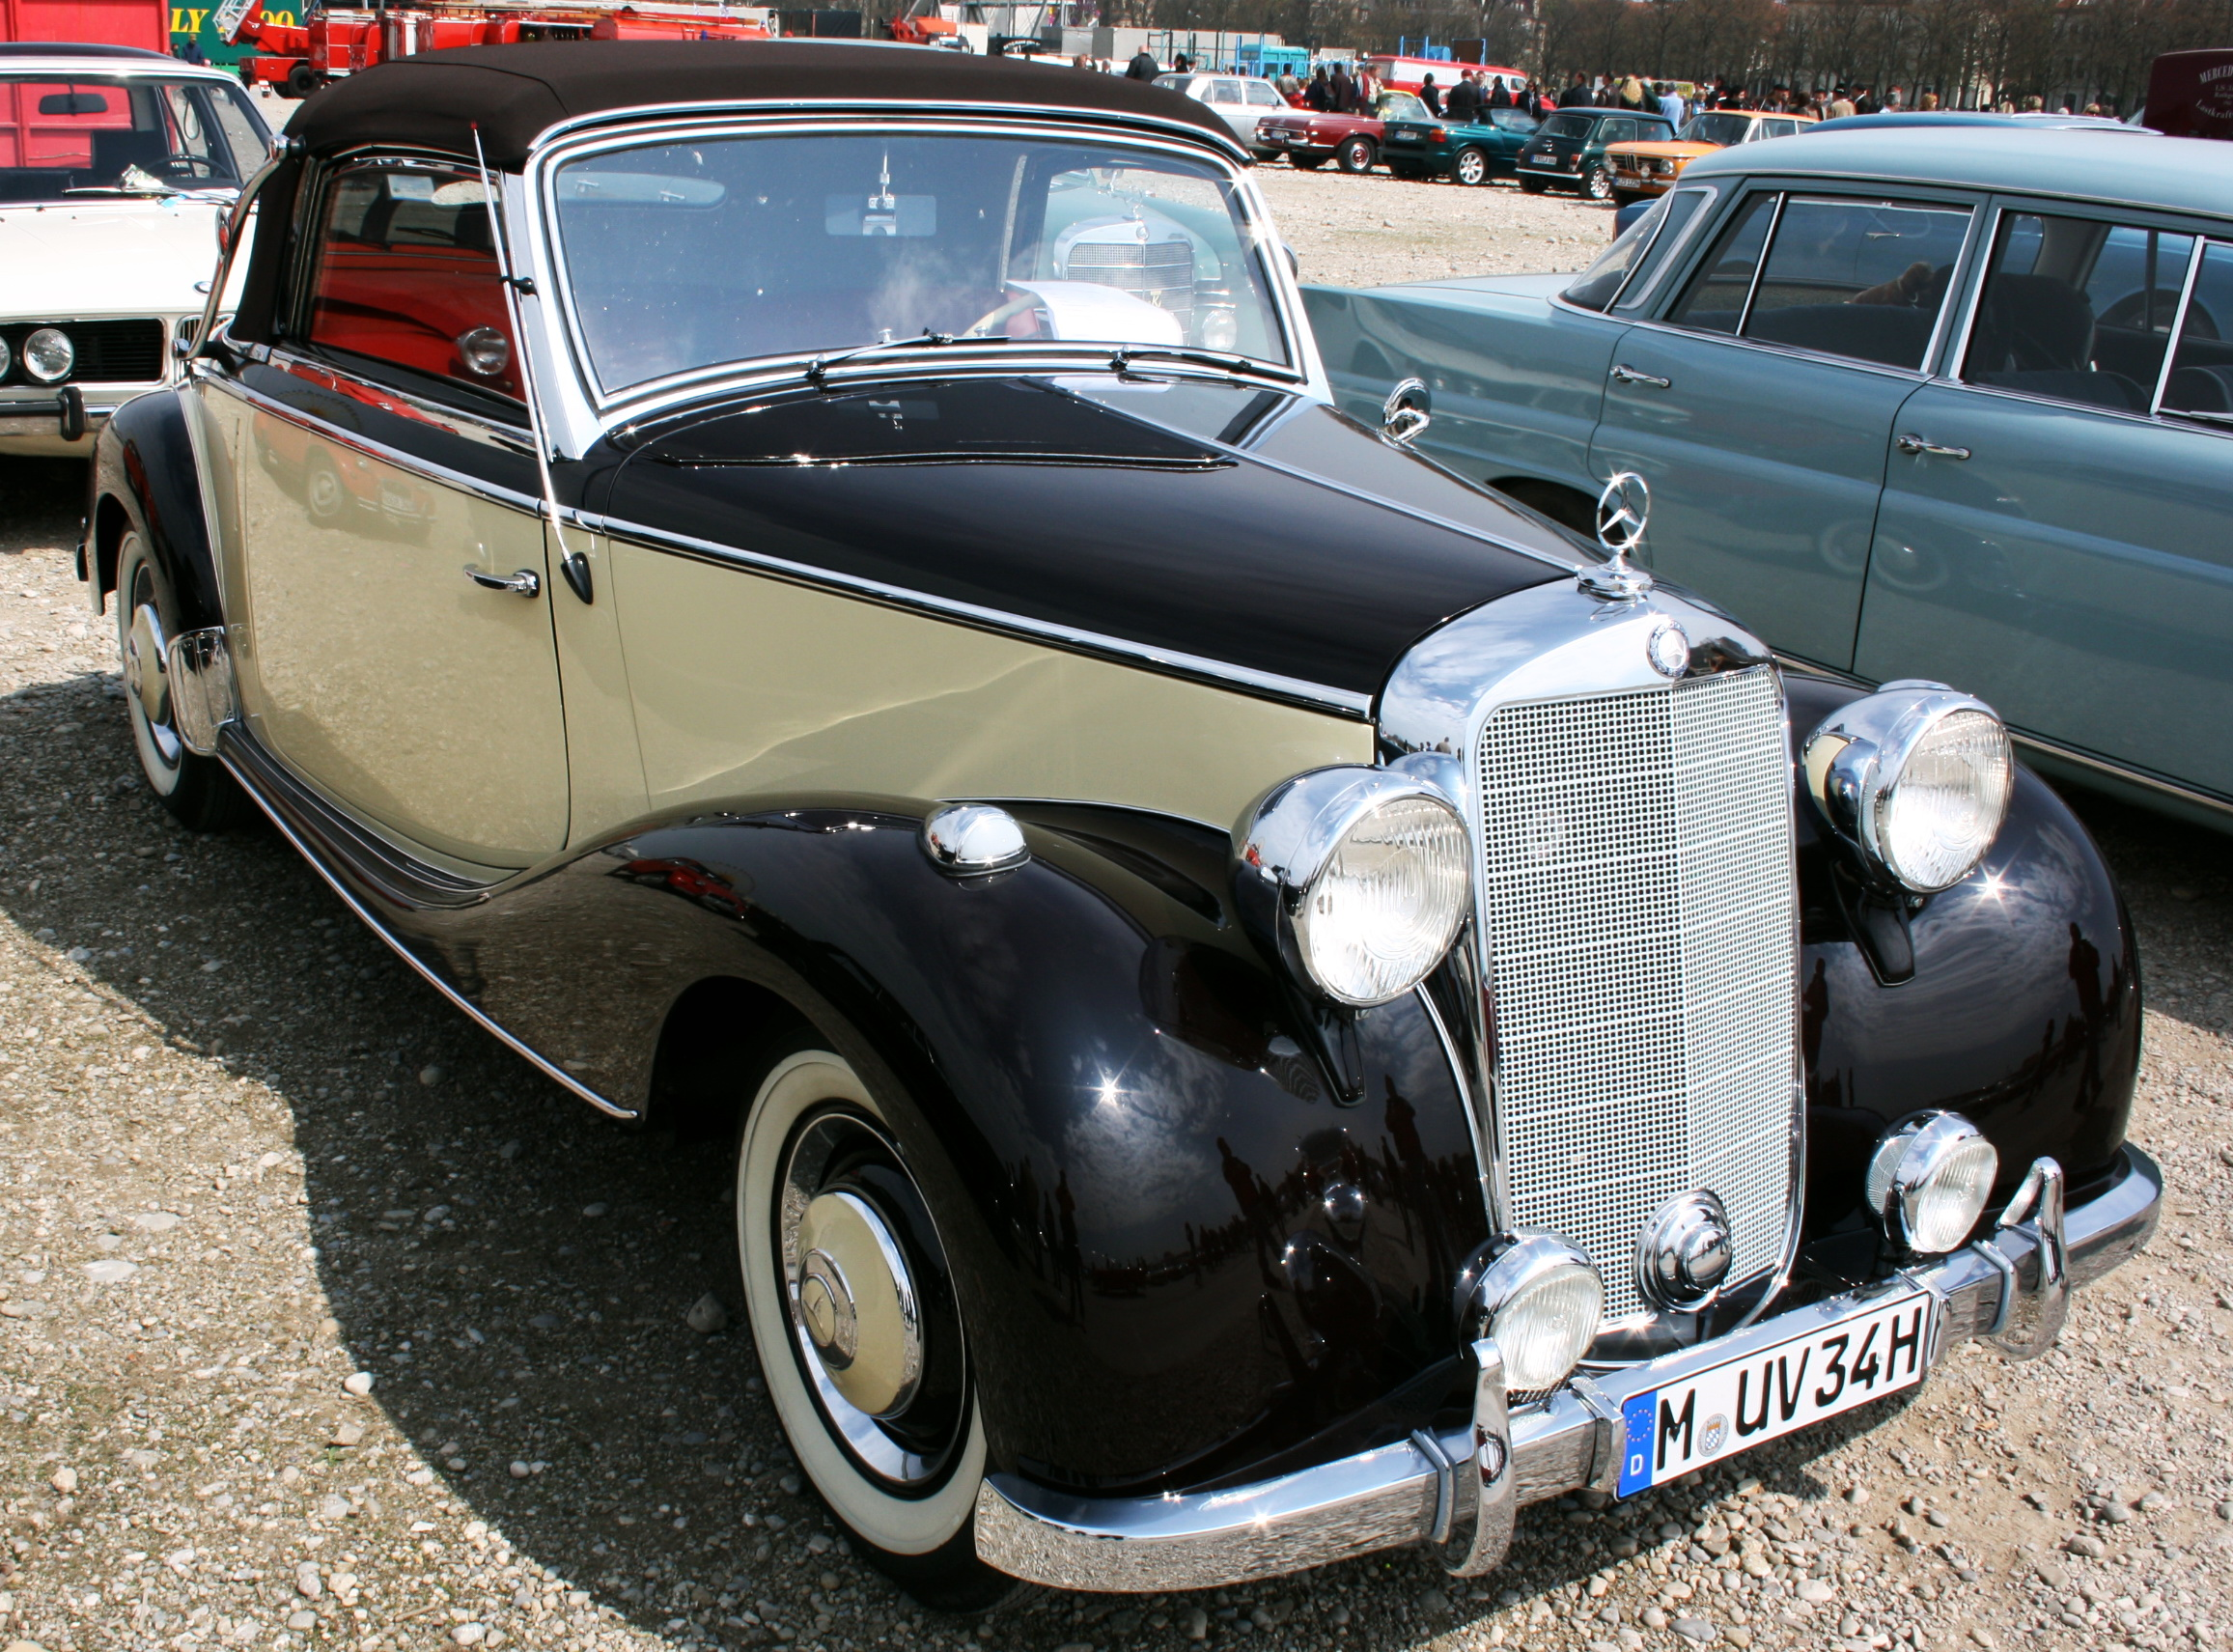 file daimler benz 170 s cabriolet a bj 1950 1767ccm 120kmh wikimedia commons. Black Bedroom Furniture Sets. Home Design Ideas